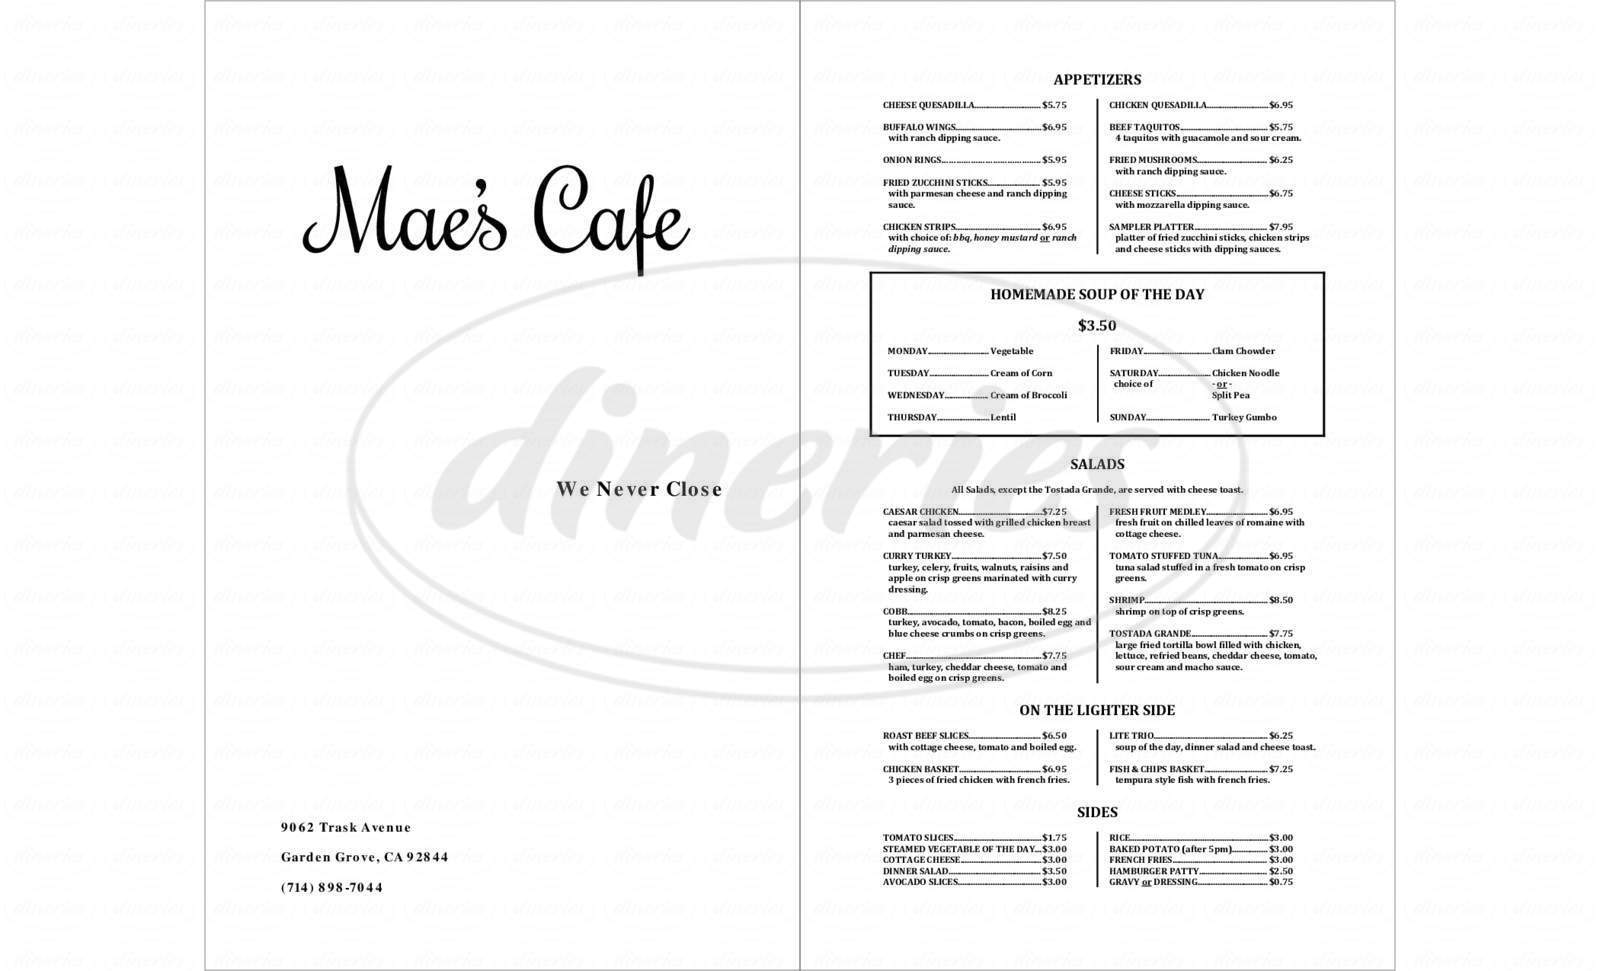 menu for Mae's Café